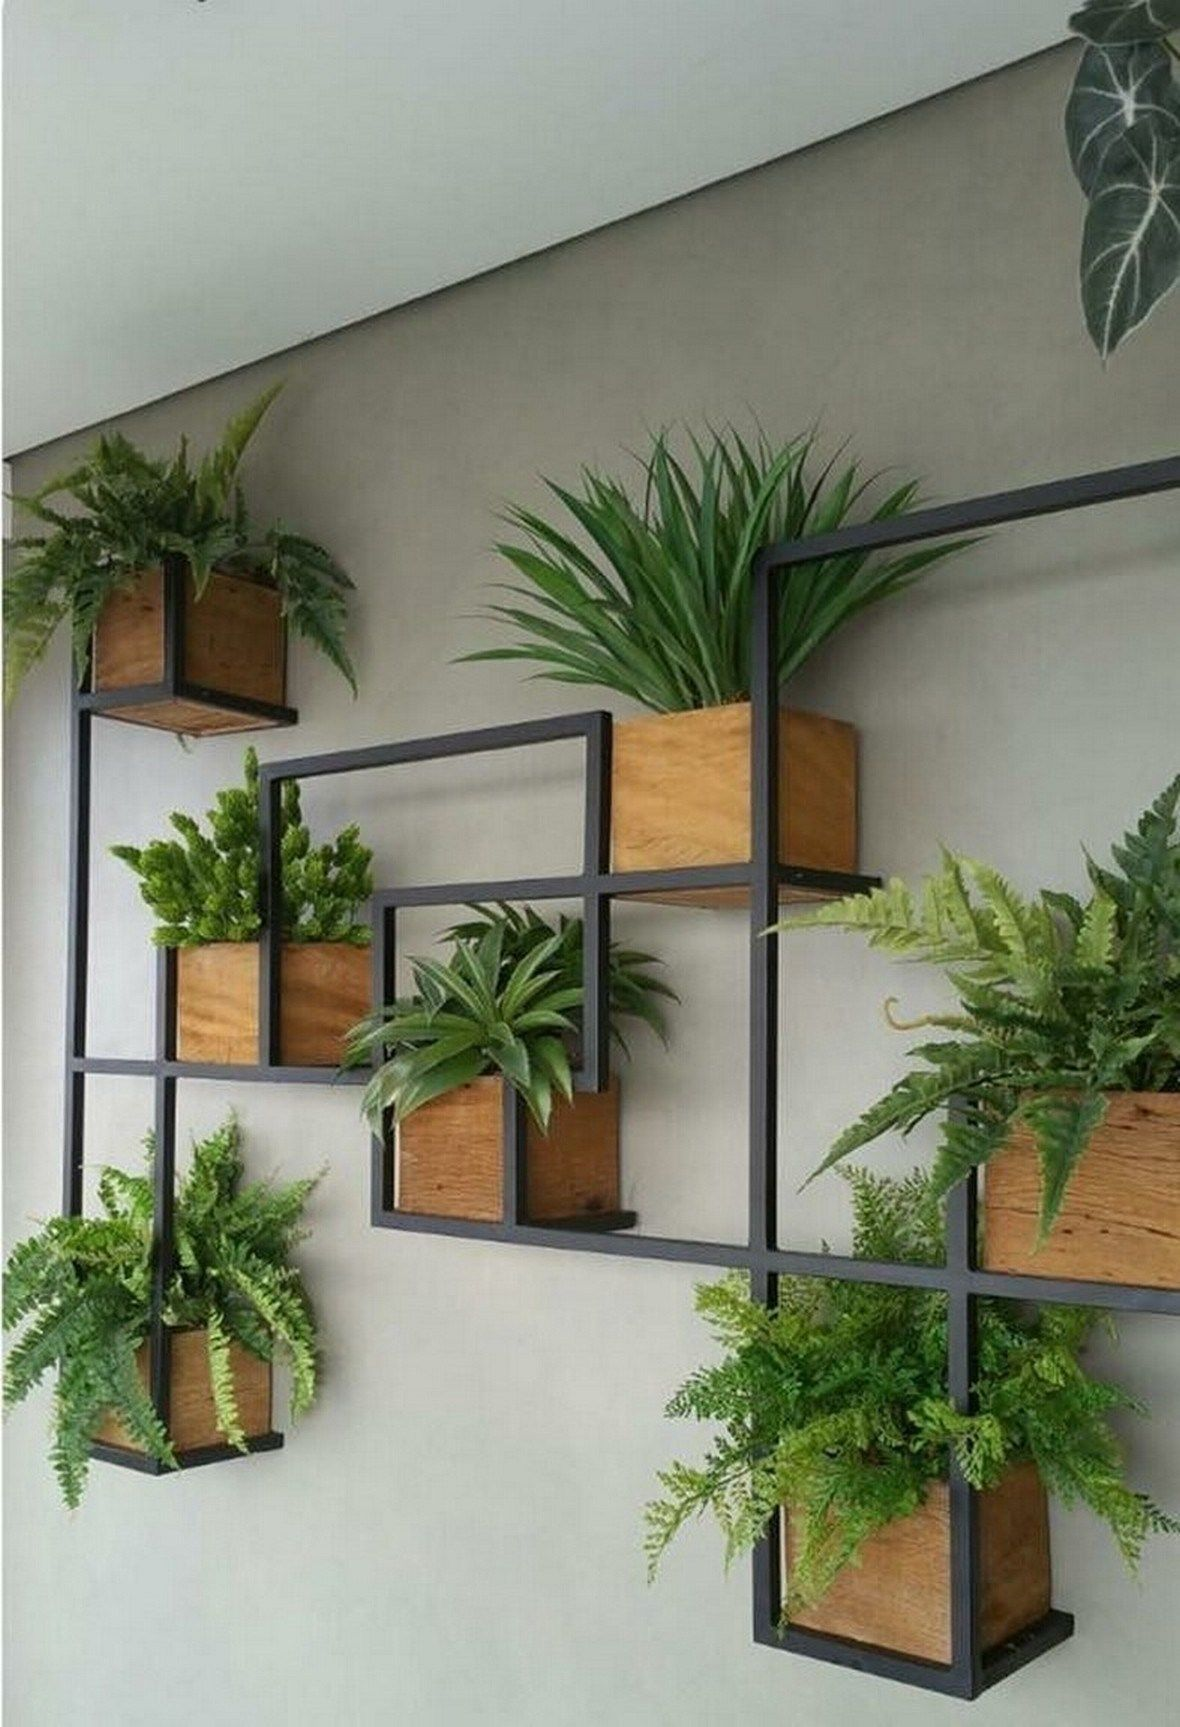 30 Modern And Elegant Vertical Wall Planter Pots Ideas Wallplanter Pots Ideas Indoor Outdoor Diy Wall Planters Indoor House Plants Decor Wall Planters Outdoor